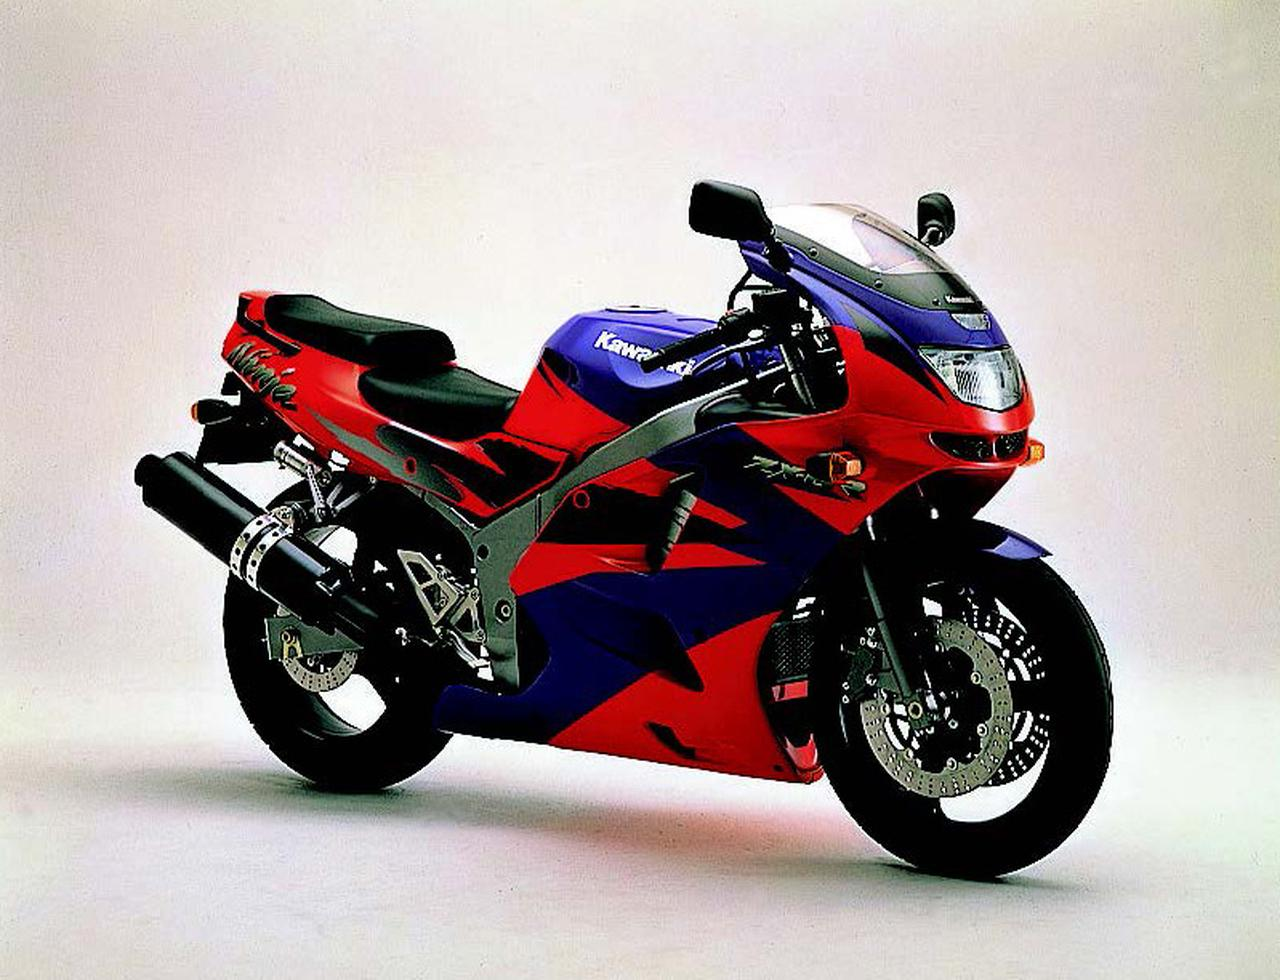 Images : カワサキ ニンジャ ZX-6R 1995 年